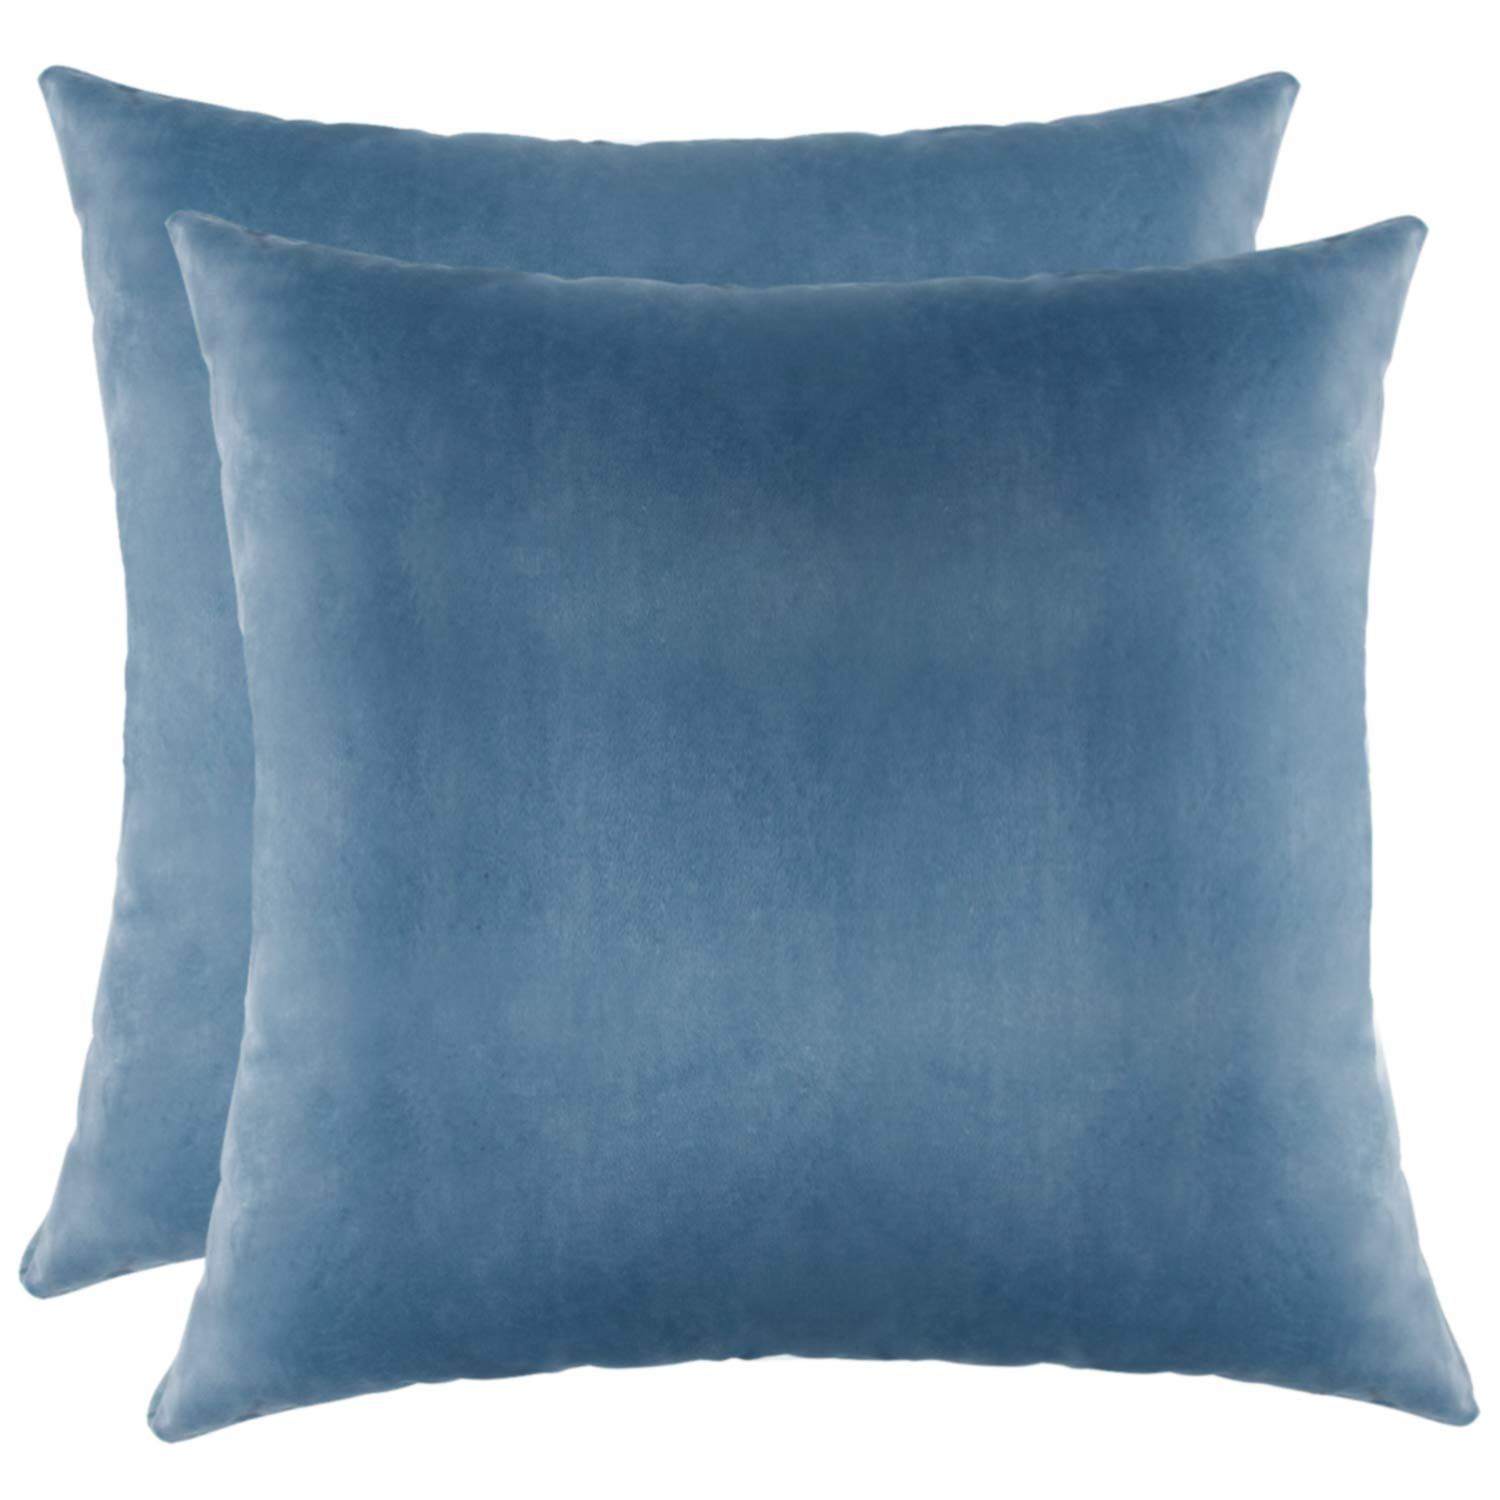 WFall Couch Pillow Covers, Soft Decorative Throw Pillows Case, Square Throw Pillow Covers for Couch Sofa Car 18x18, Pack of 2 (Lake Blue)